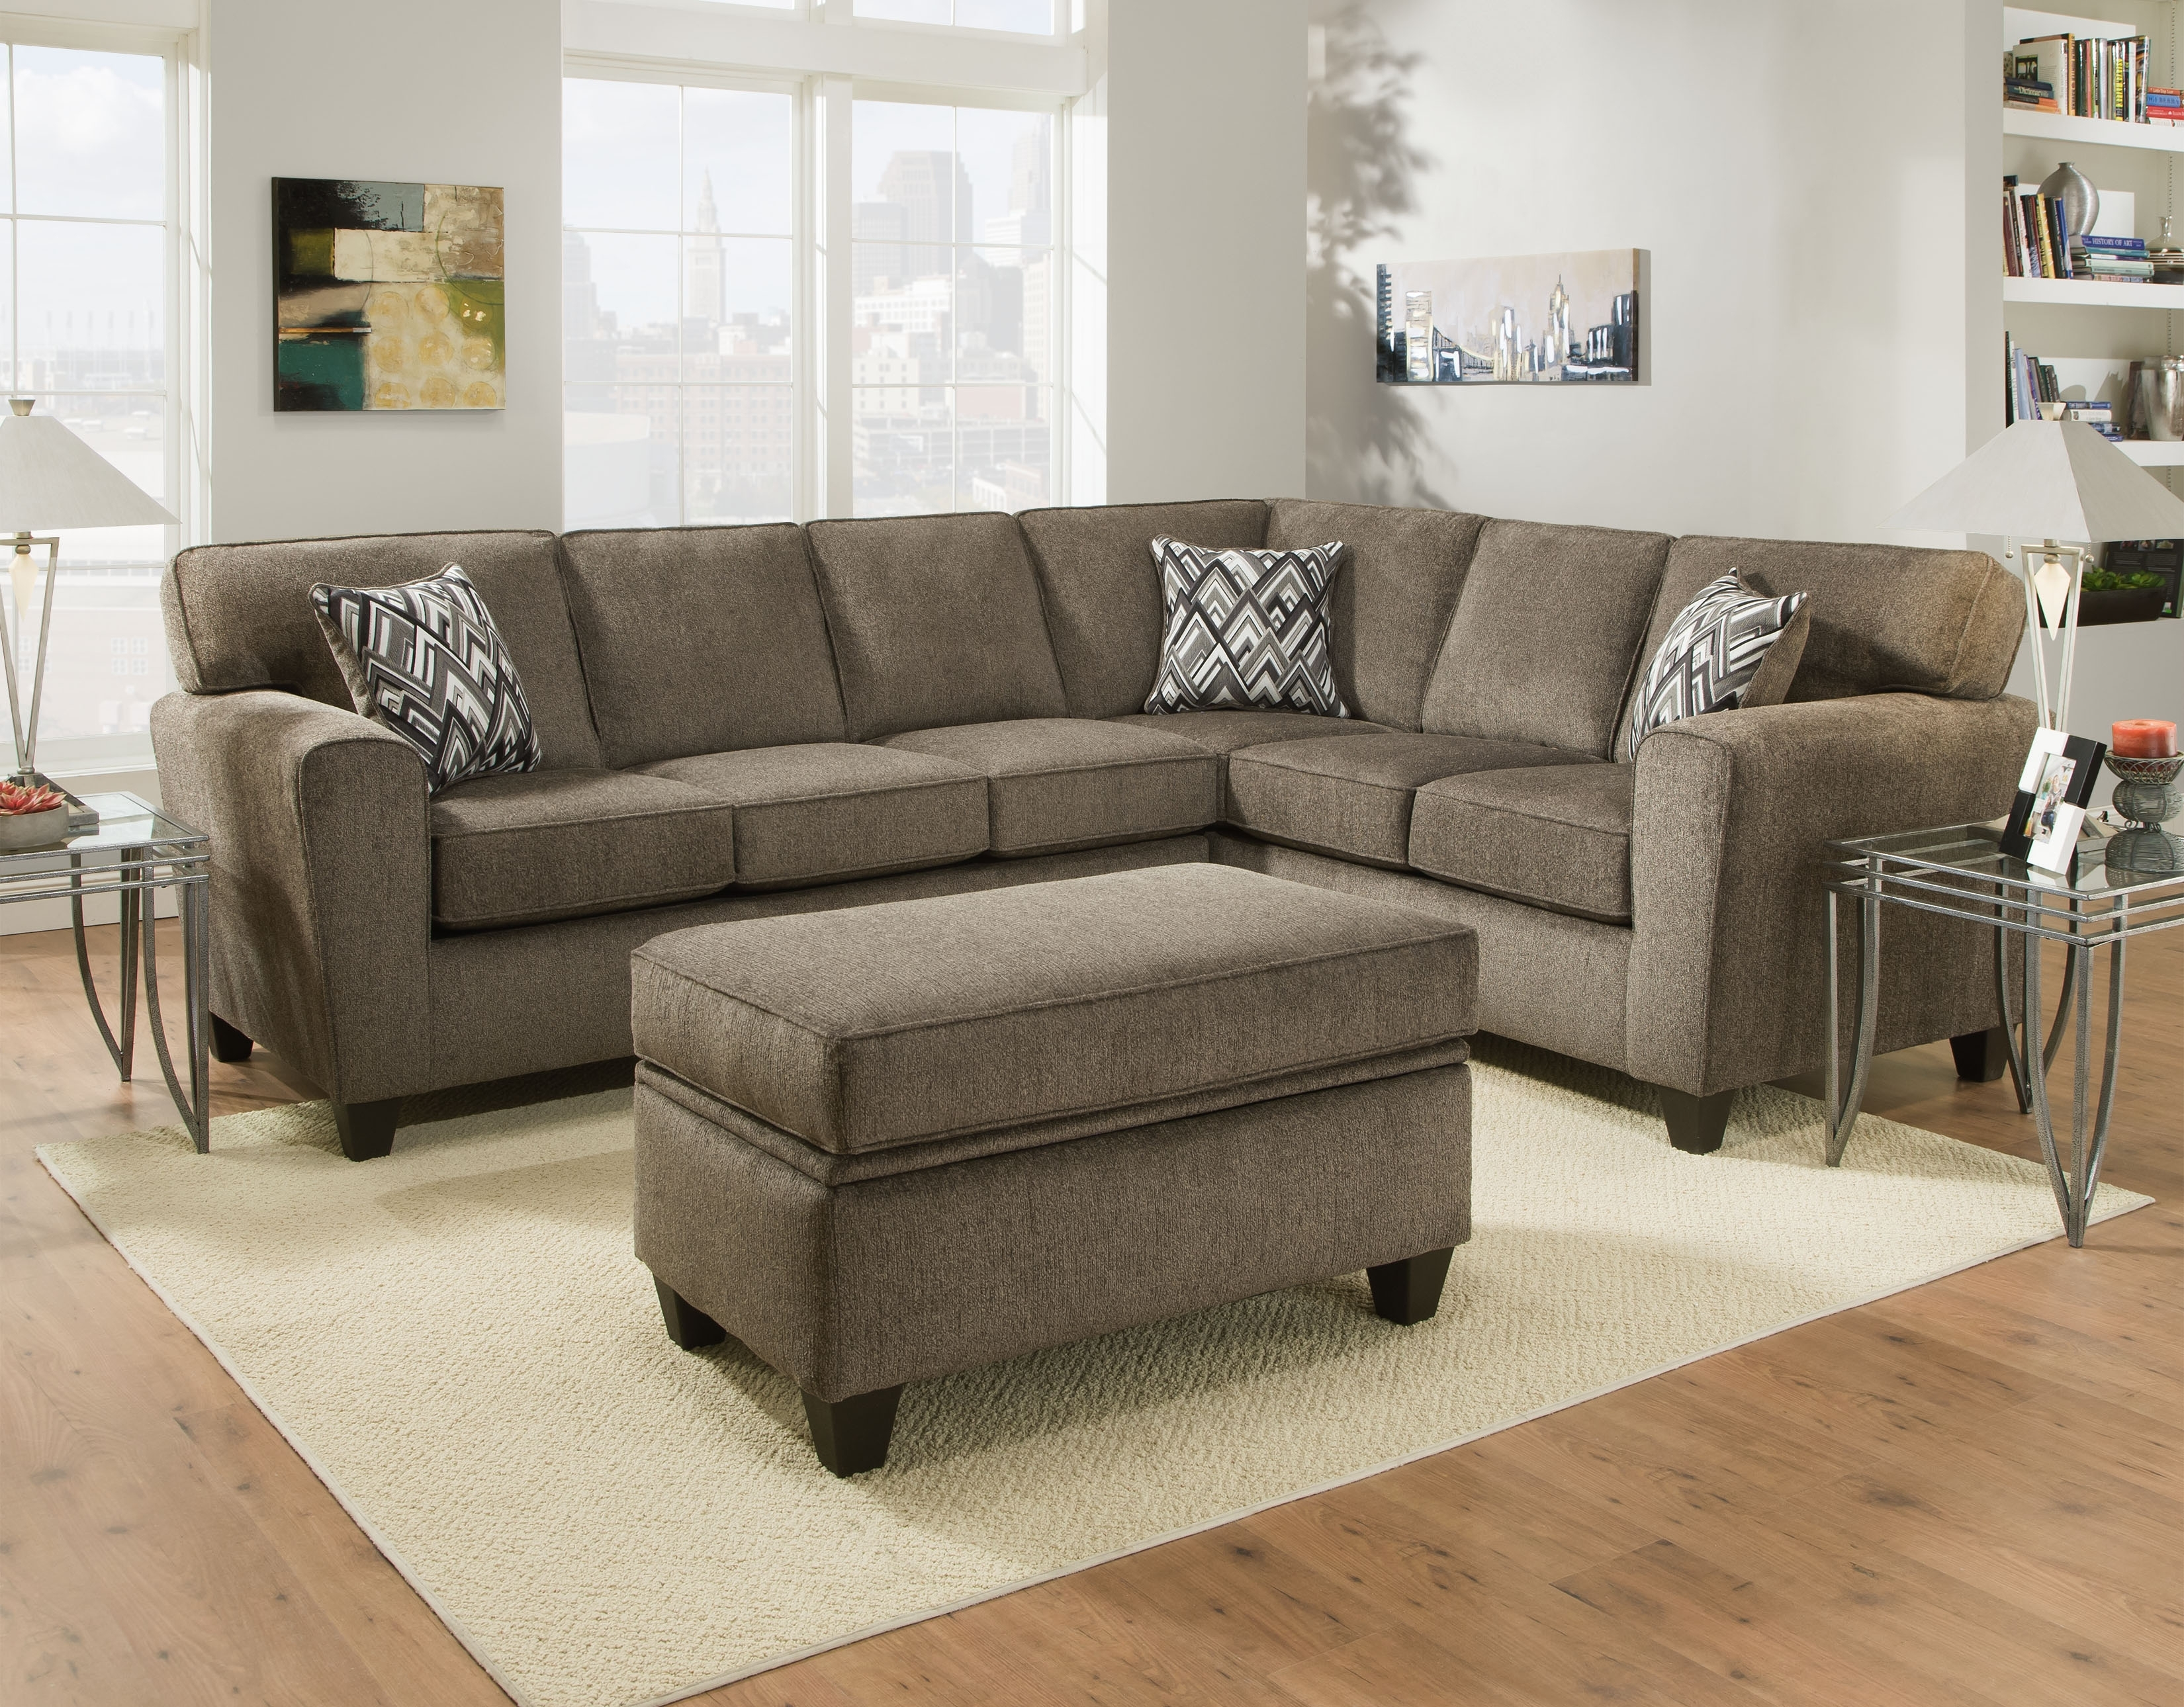 Living Room – Crazy Joe's Best Deal Furniture For Janesville Wi Sectional Sofas (Image 4 of 10)